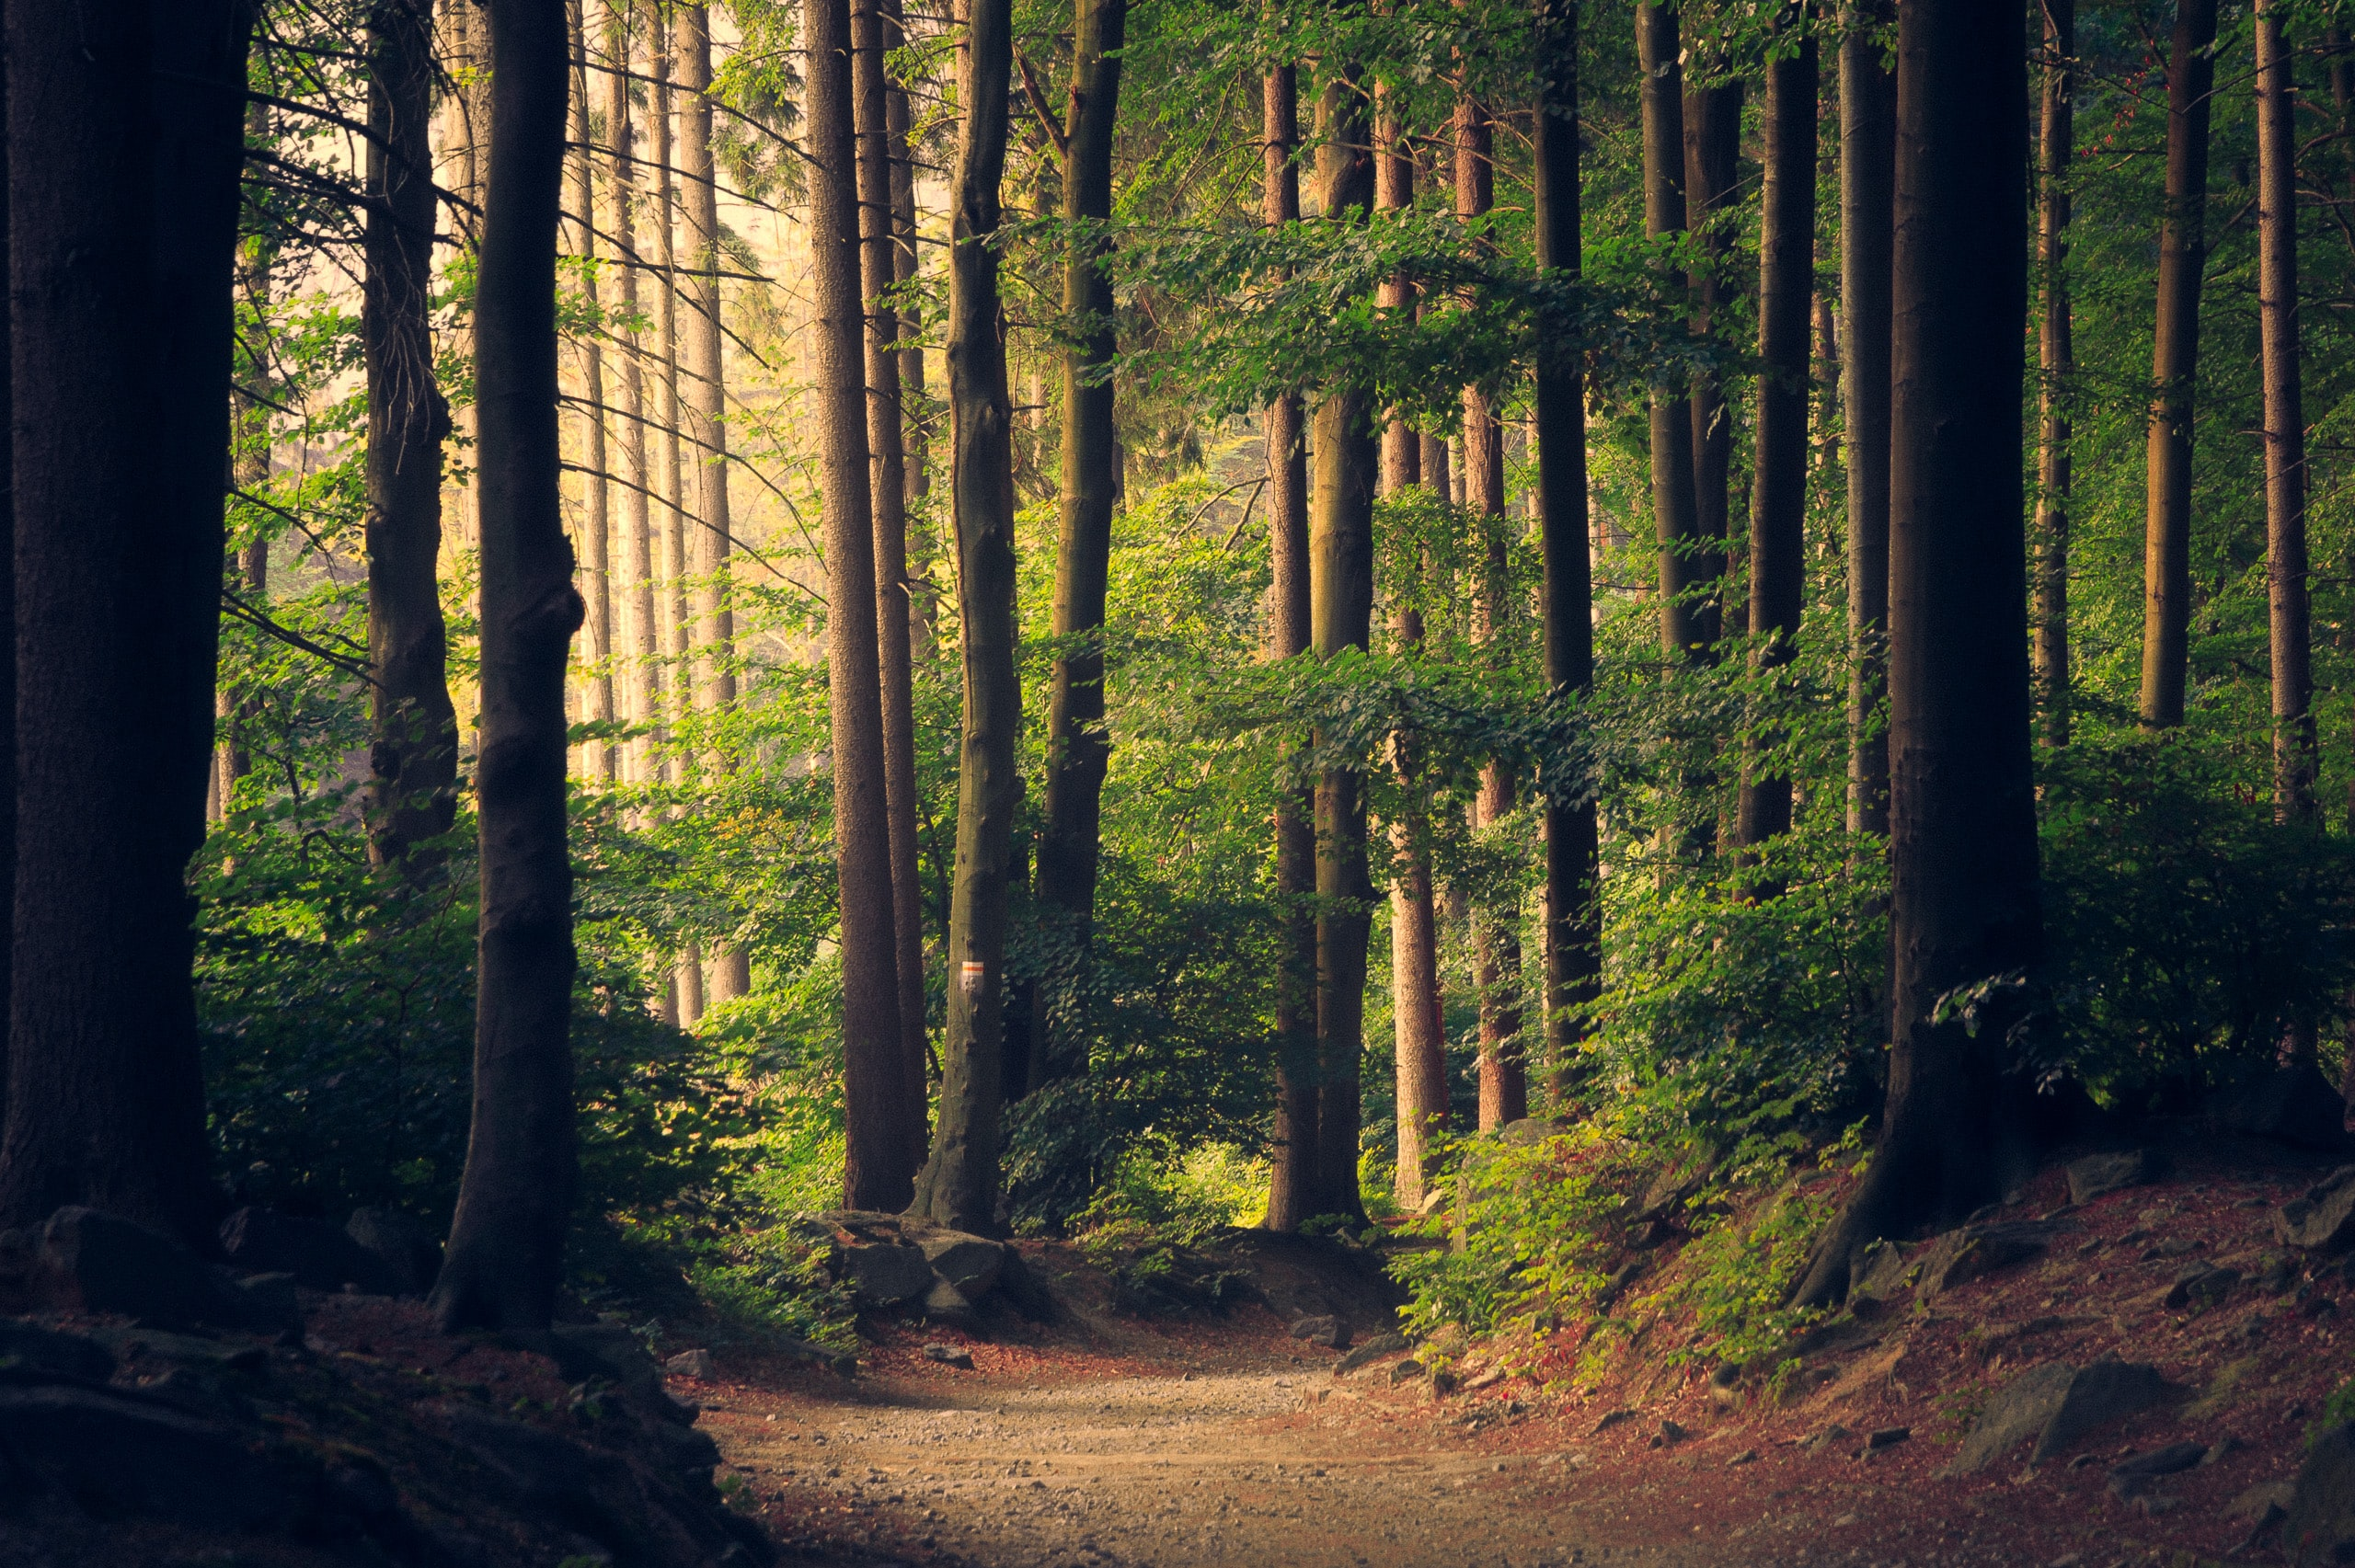 trees lining a forest path